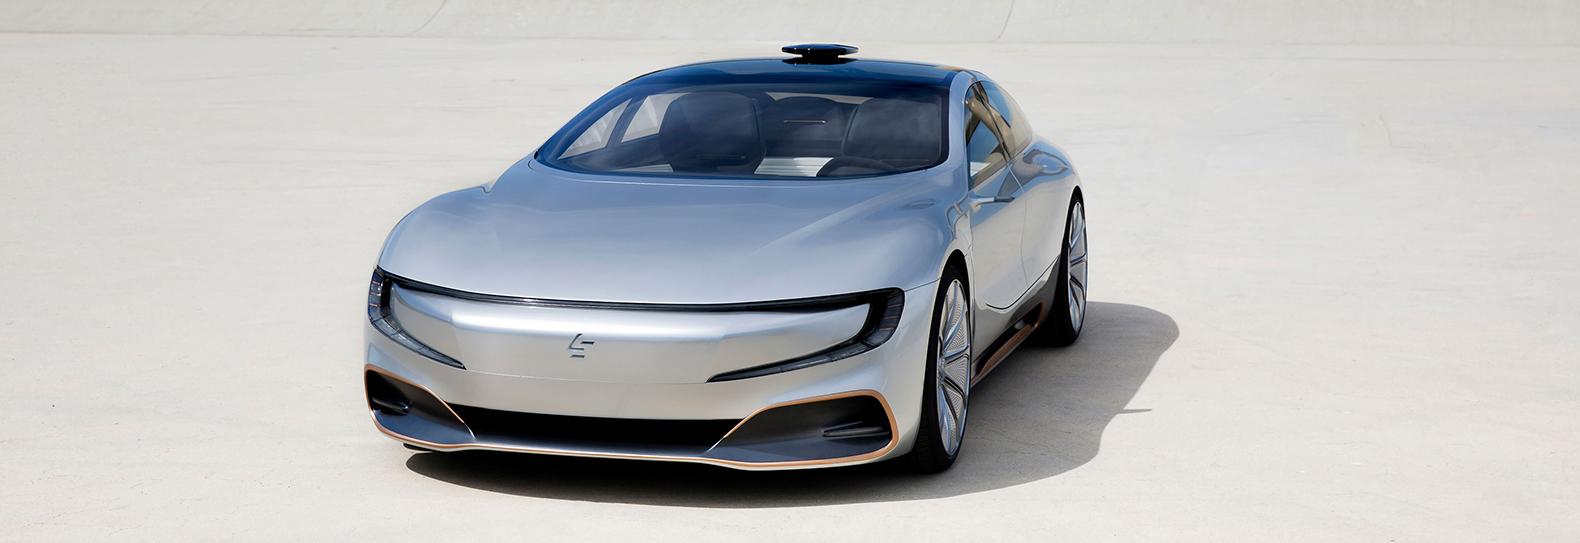 LeEco, LeSee, LeSee by LeEco, car, cars, automotive, automobiles, electric car, electric cars, electric vehicle, electric vehicles, autonomous car, autonomous cars, autonomous, autonomous vehicles, autonomous vehicle, factory, car factory, electric car factory, China